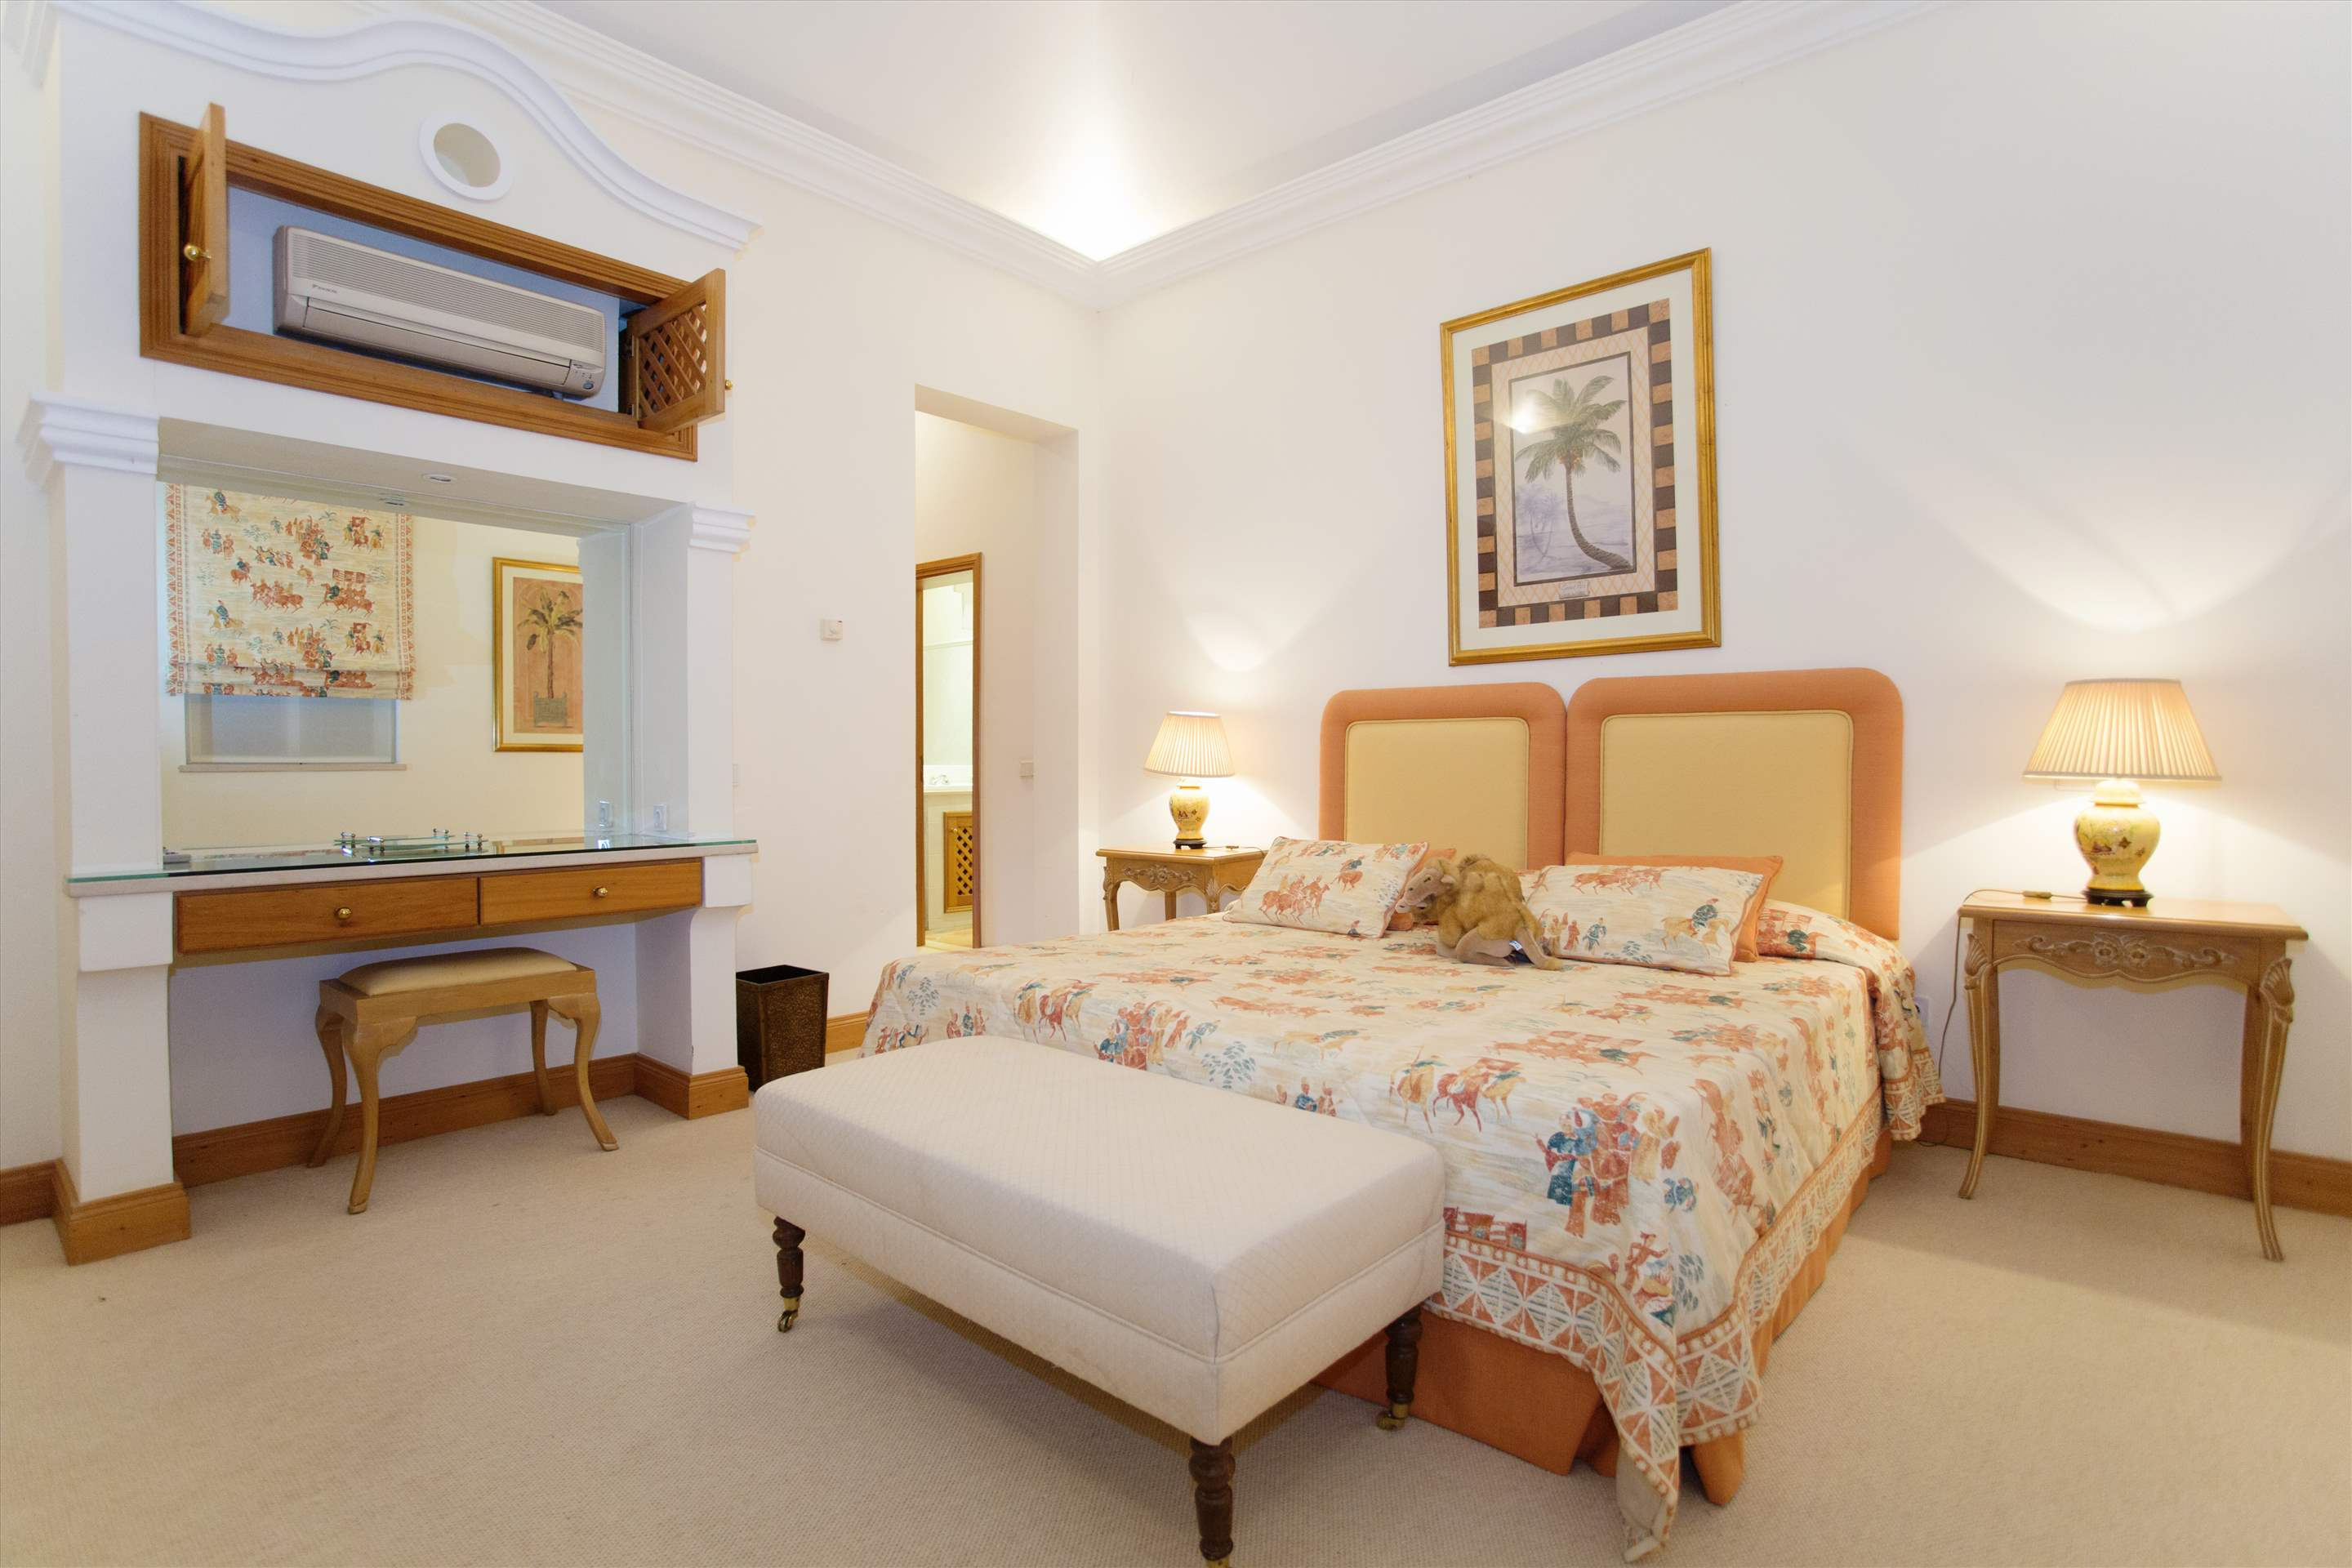 Villa Palmeiras Altas, 5 bedroom villa in Quinta do Lago, Algarve Photo #26